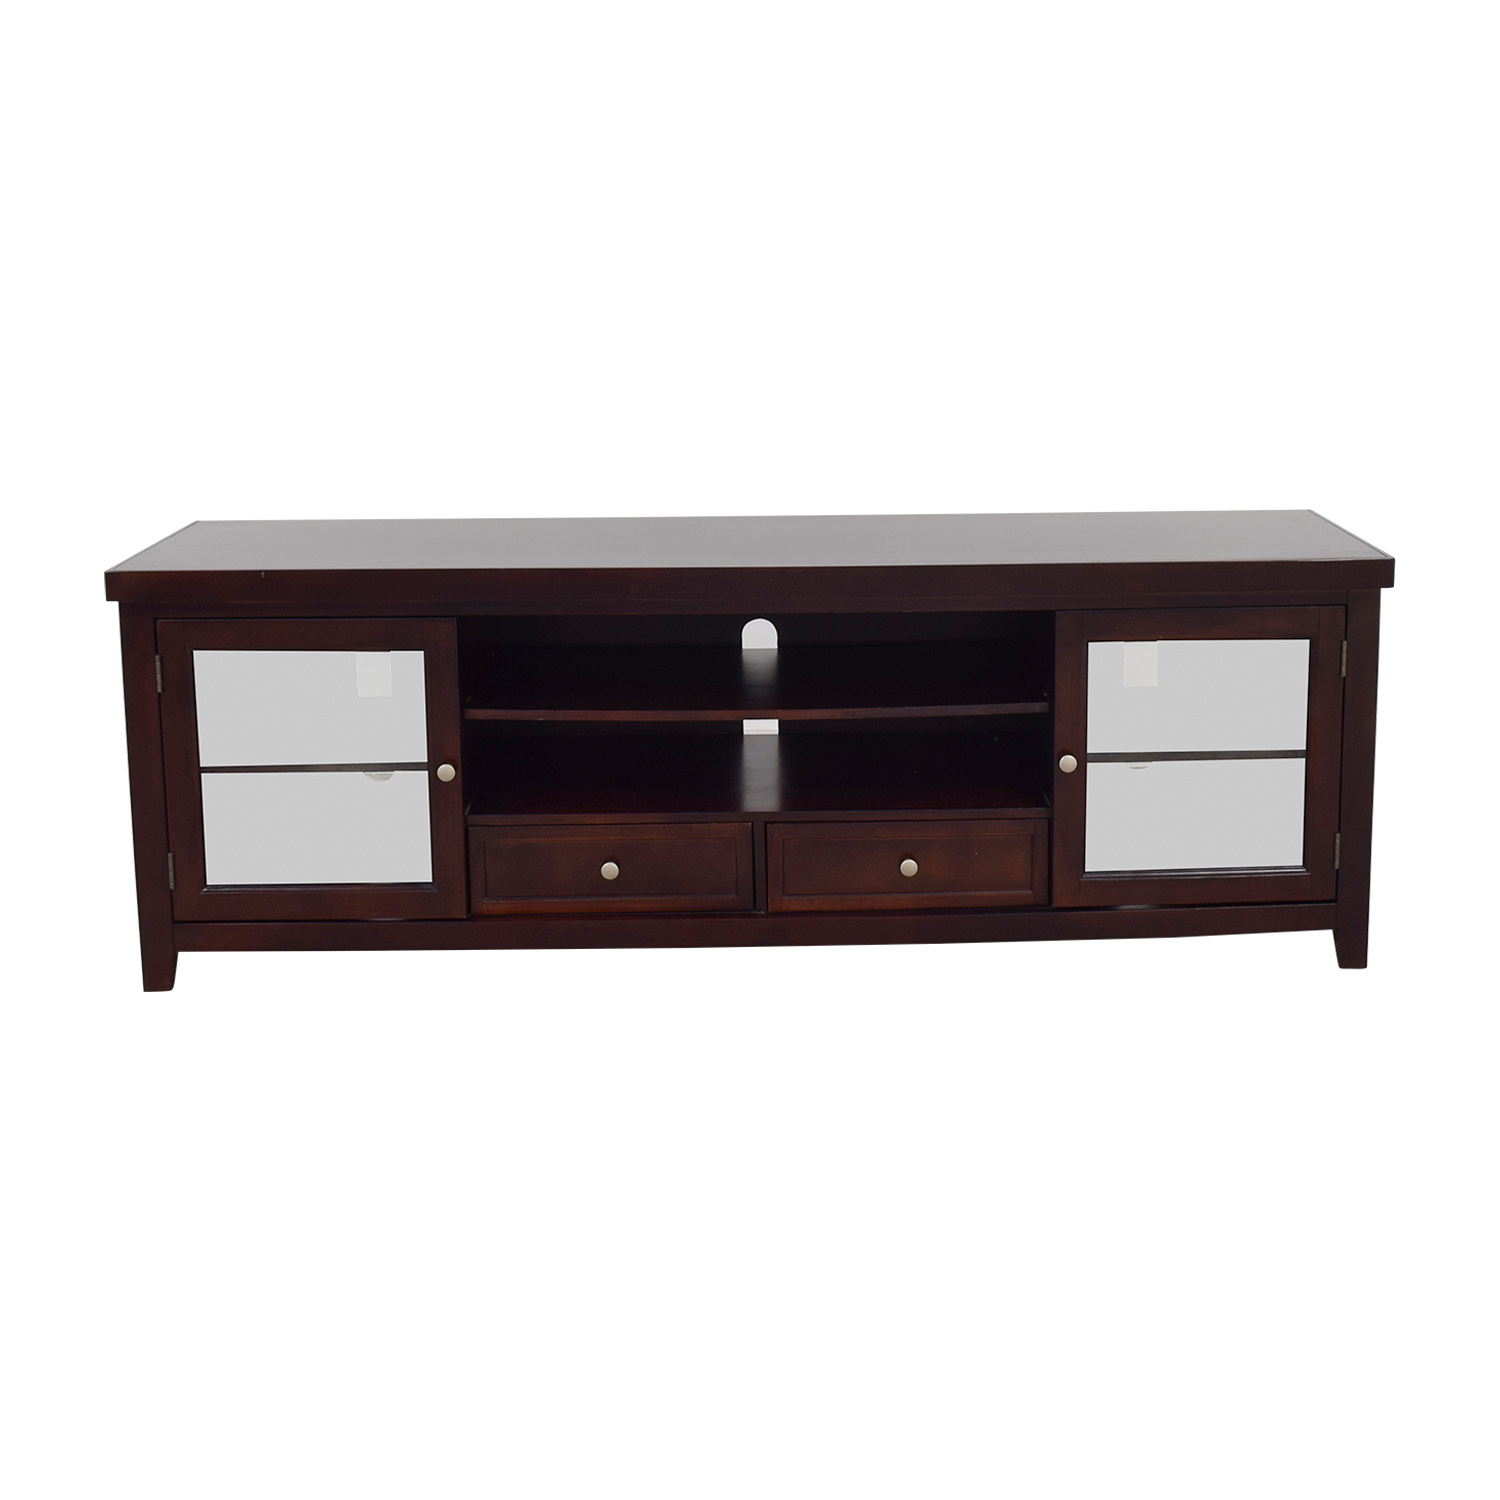 buy tv stand quality second hand furniture. Black Bedroom Furniture Sets. Home Design Ideas